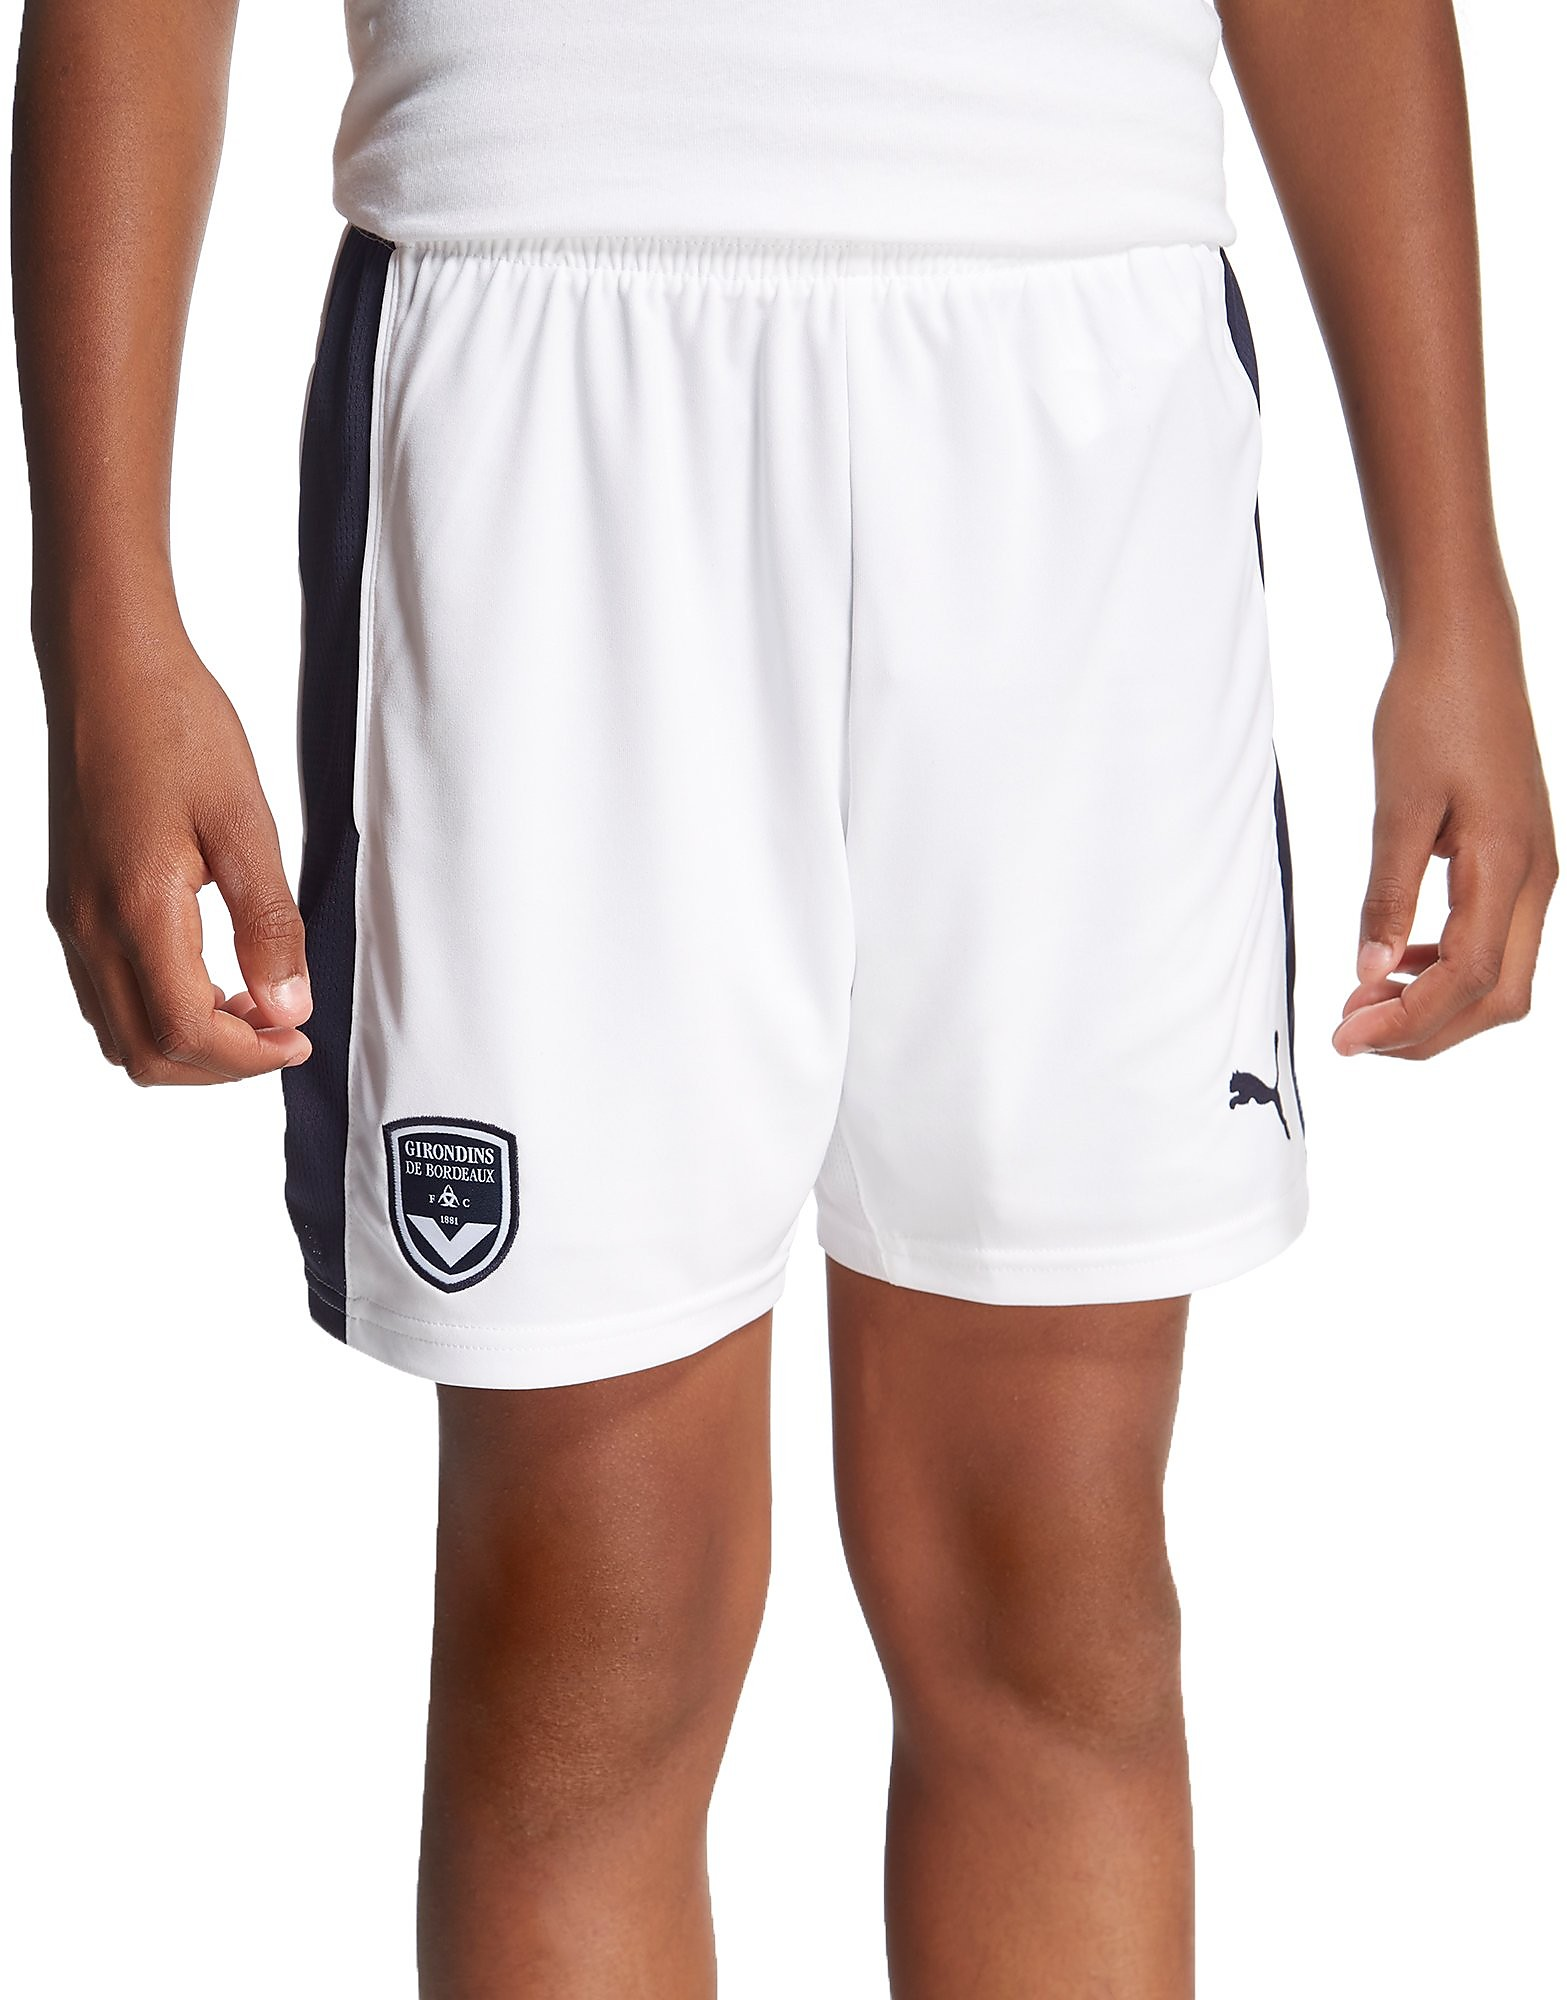 PUMA Bordeaux 2016/17 Hjemmebaneshorts junior